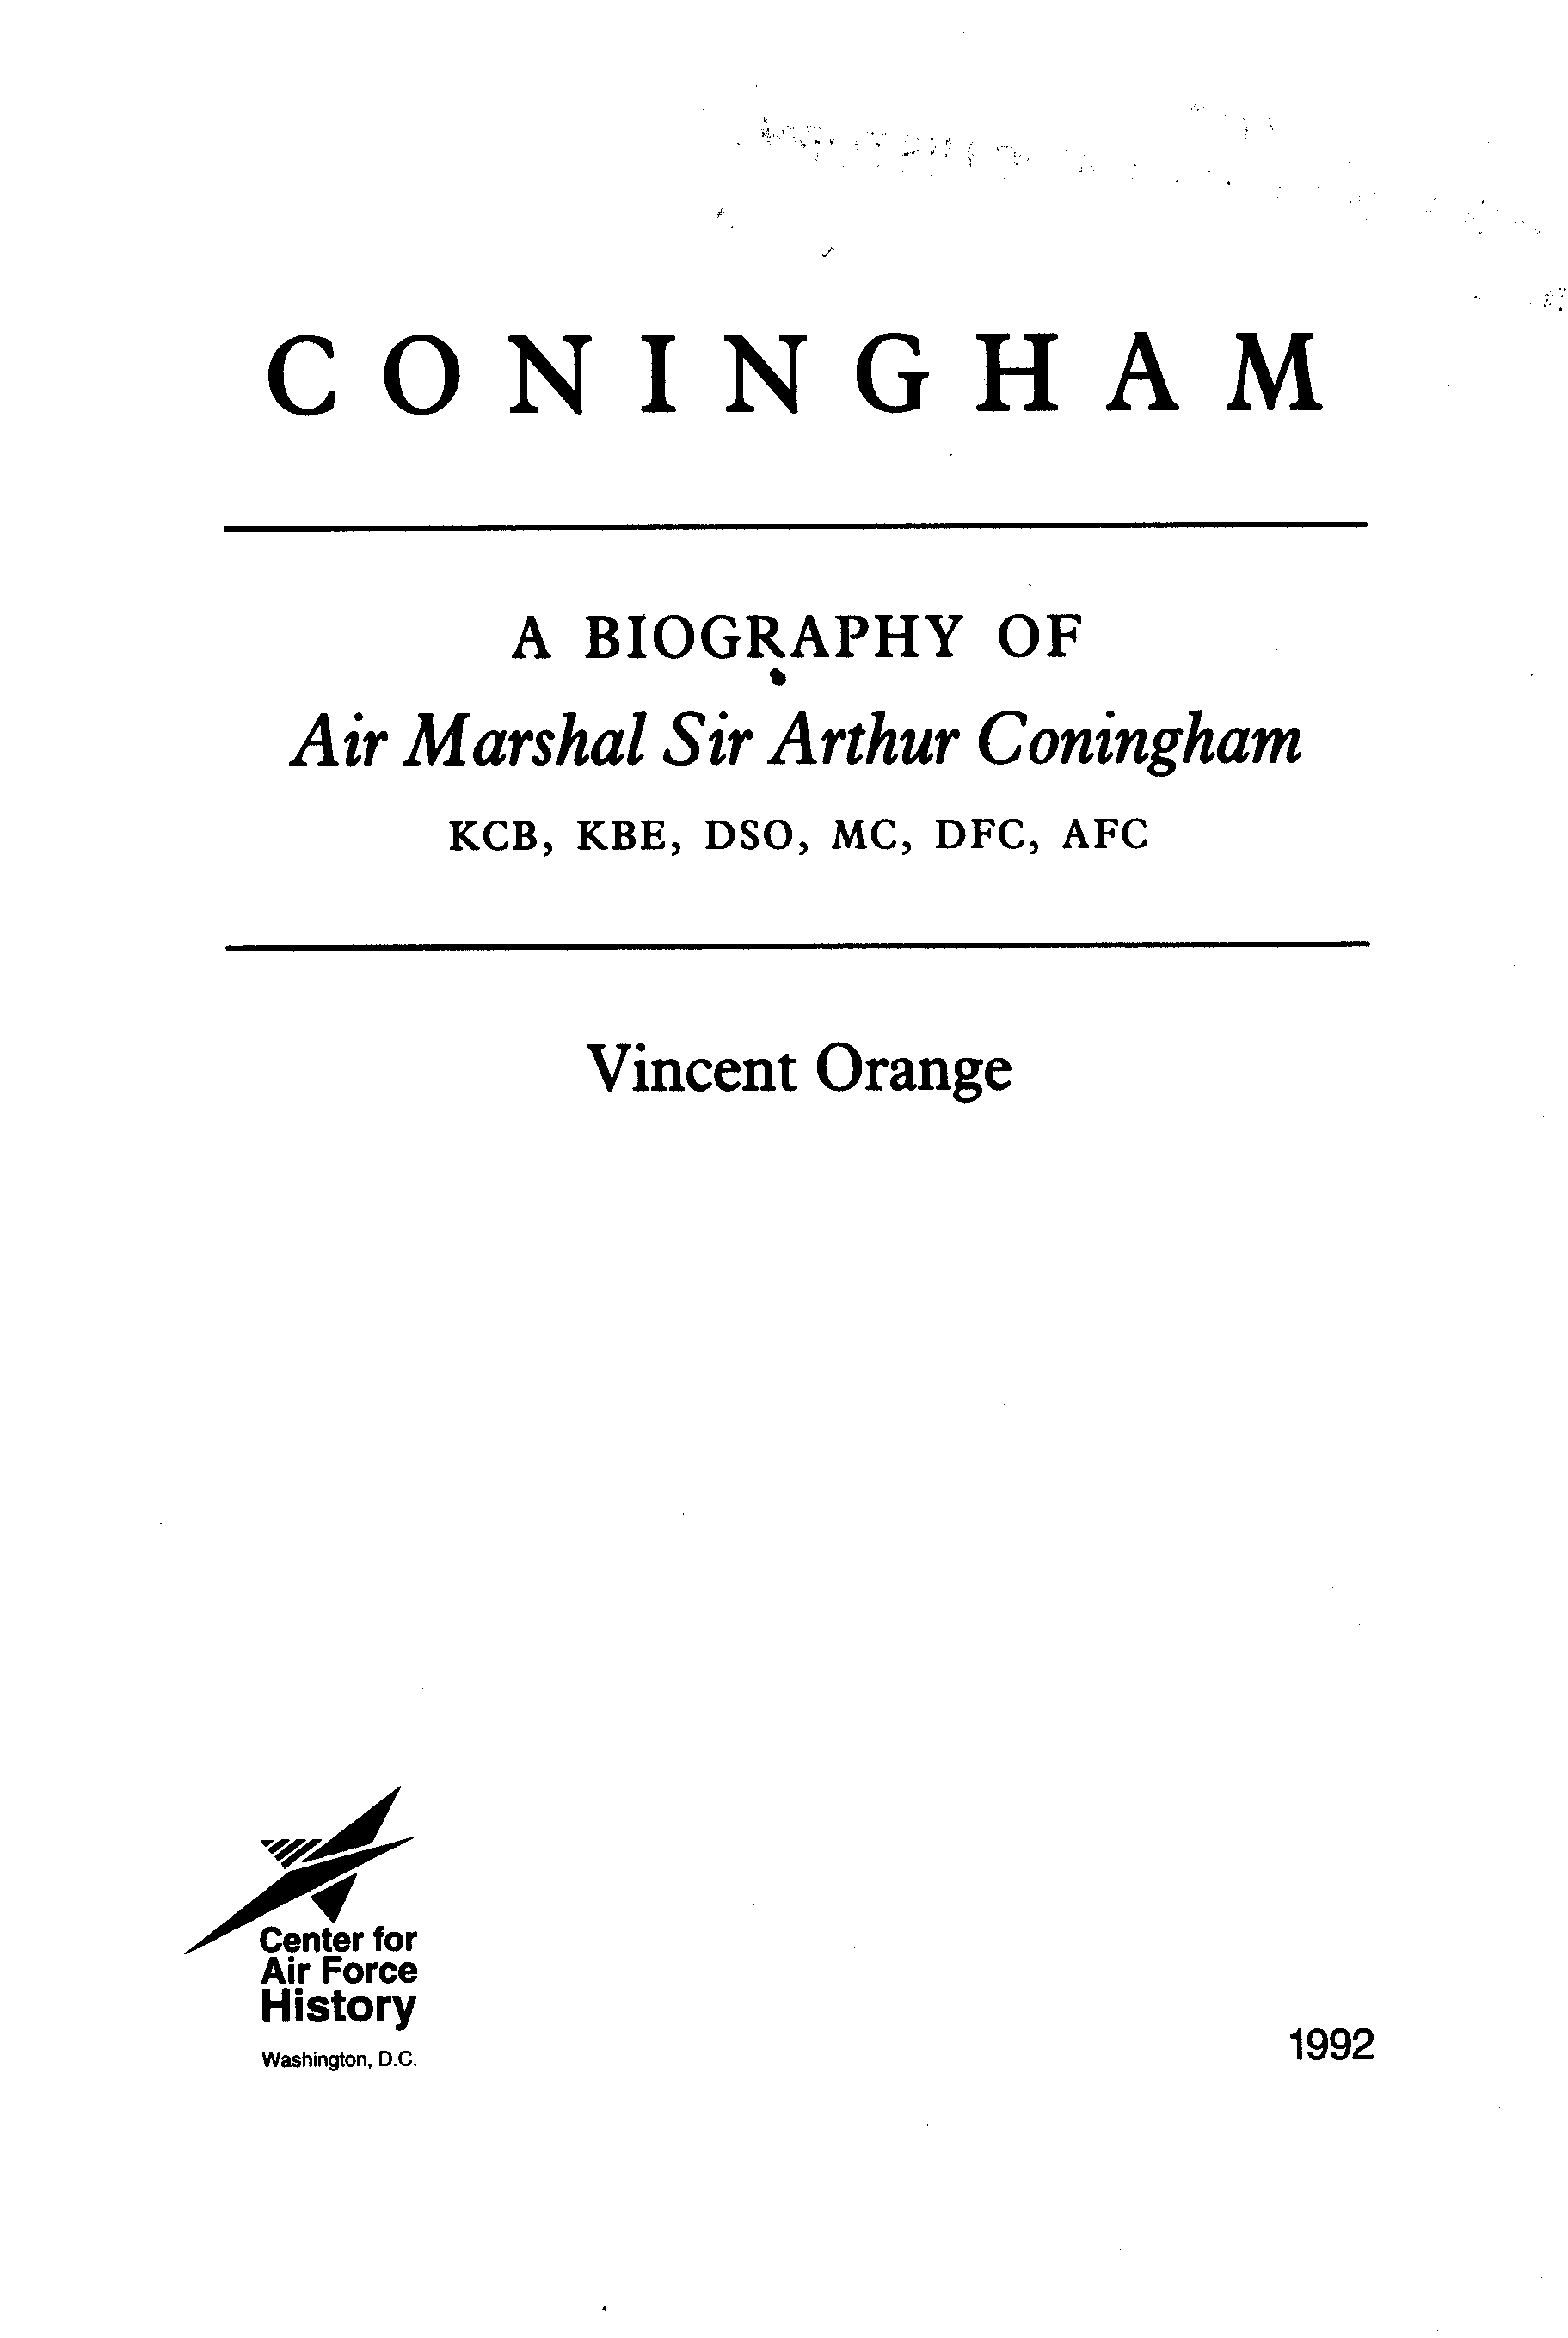 Coningham   a biography of Air Marshal Sir Arthur